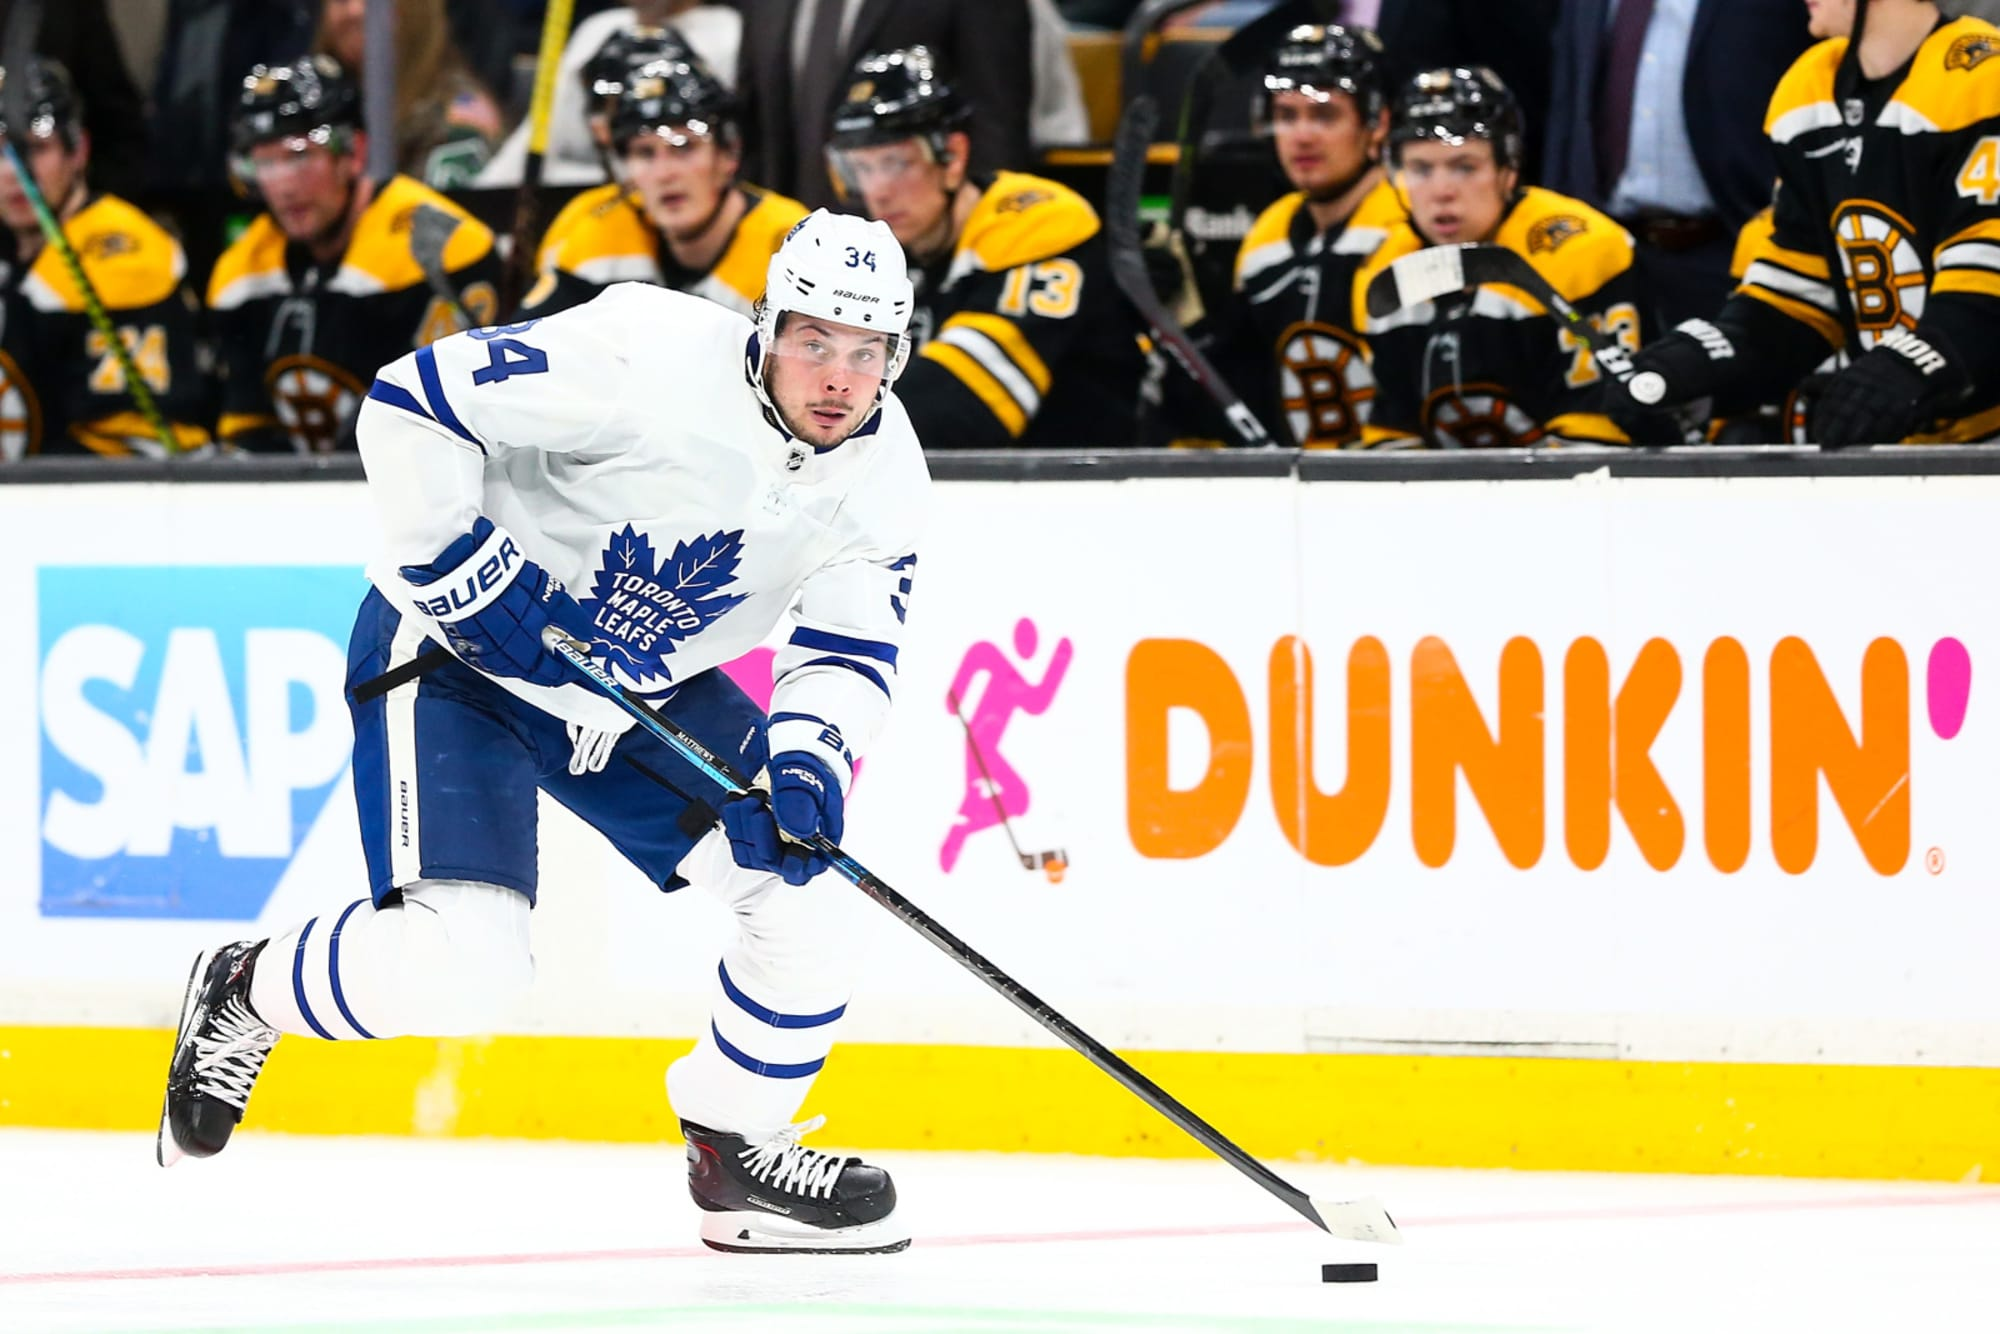 Toronto Maple Leafs: The Big Bad Boston Bruins Aren't That Scary